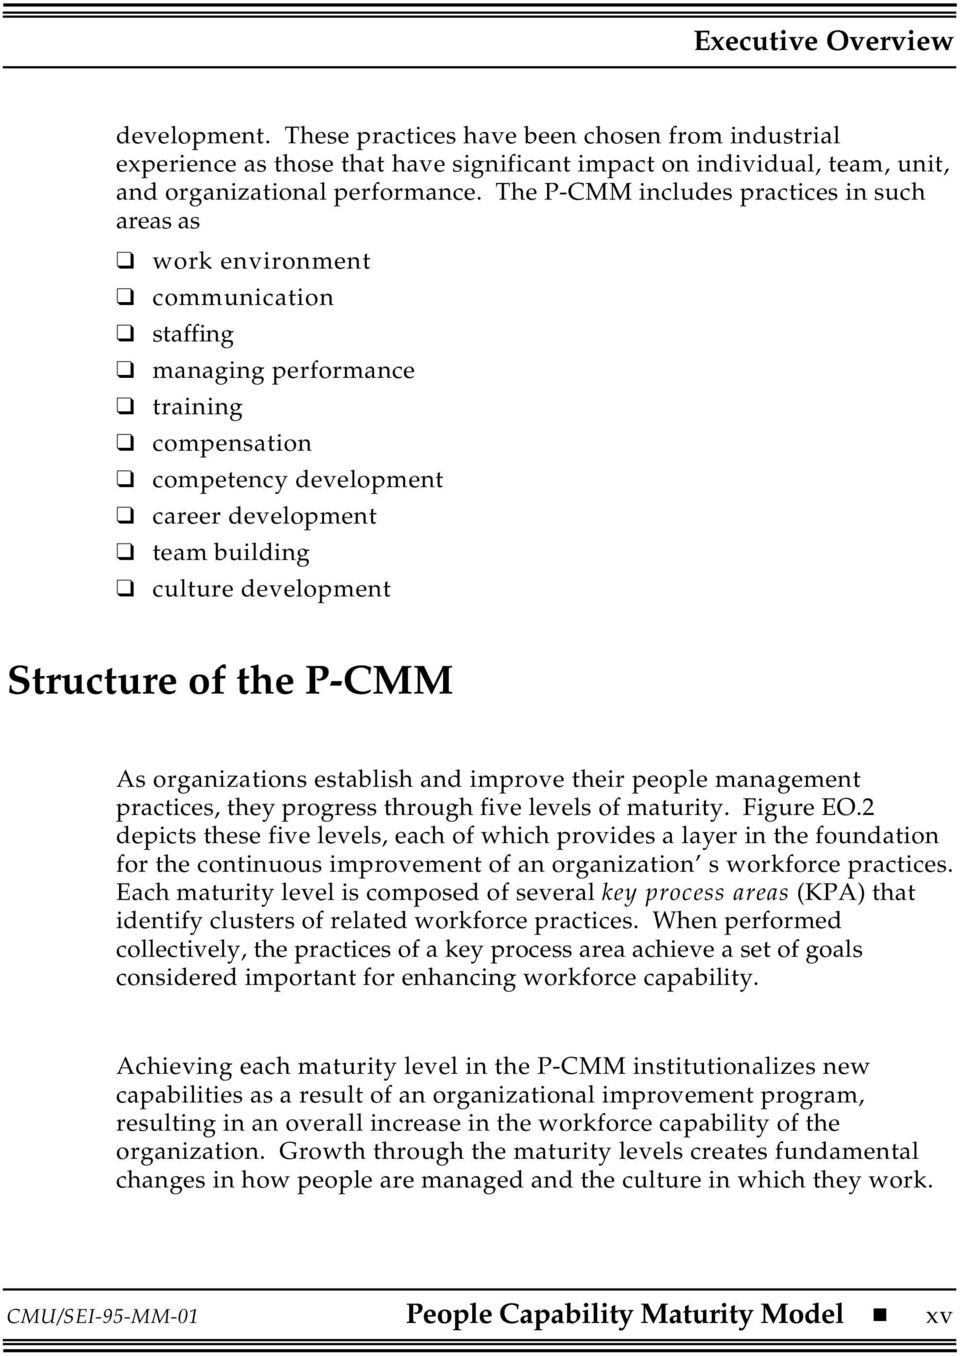 development Structure of the P-CMM As organizations establish and improve their people management practices, they progress through five levels of maturity. Figure EO.